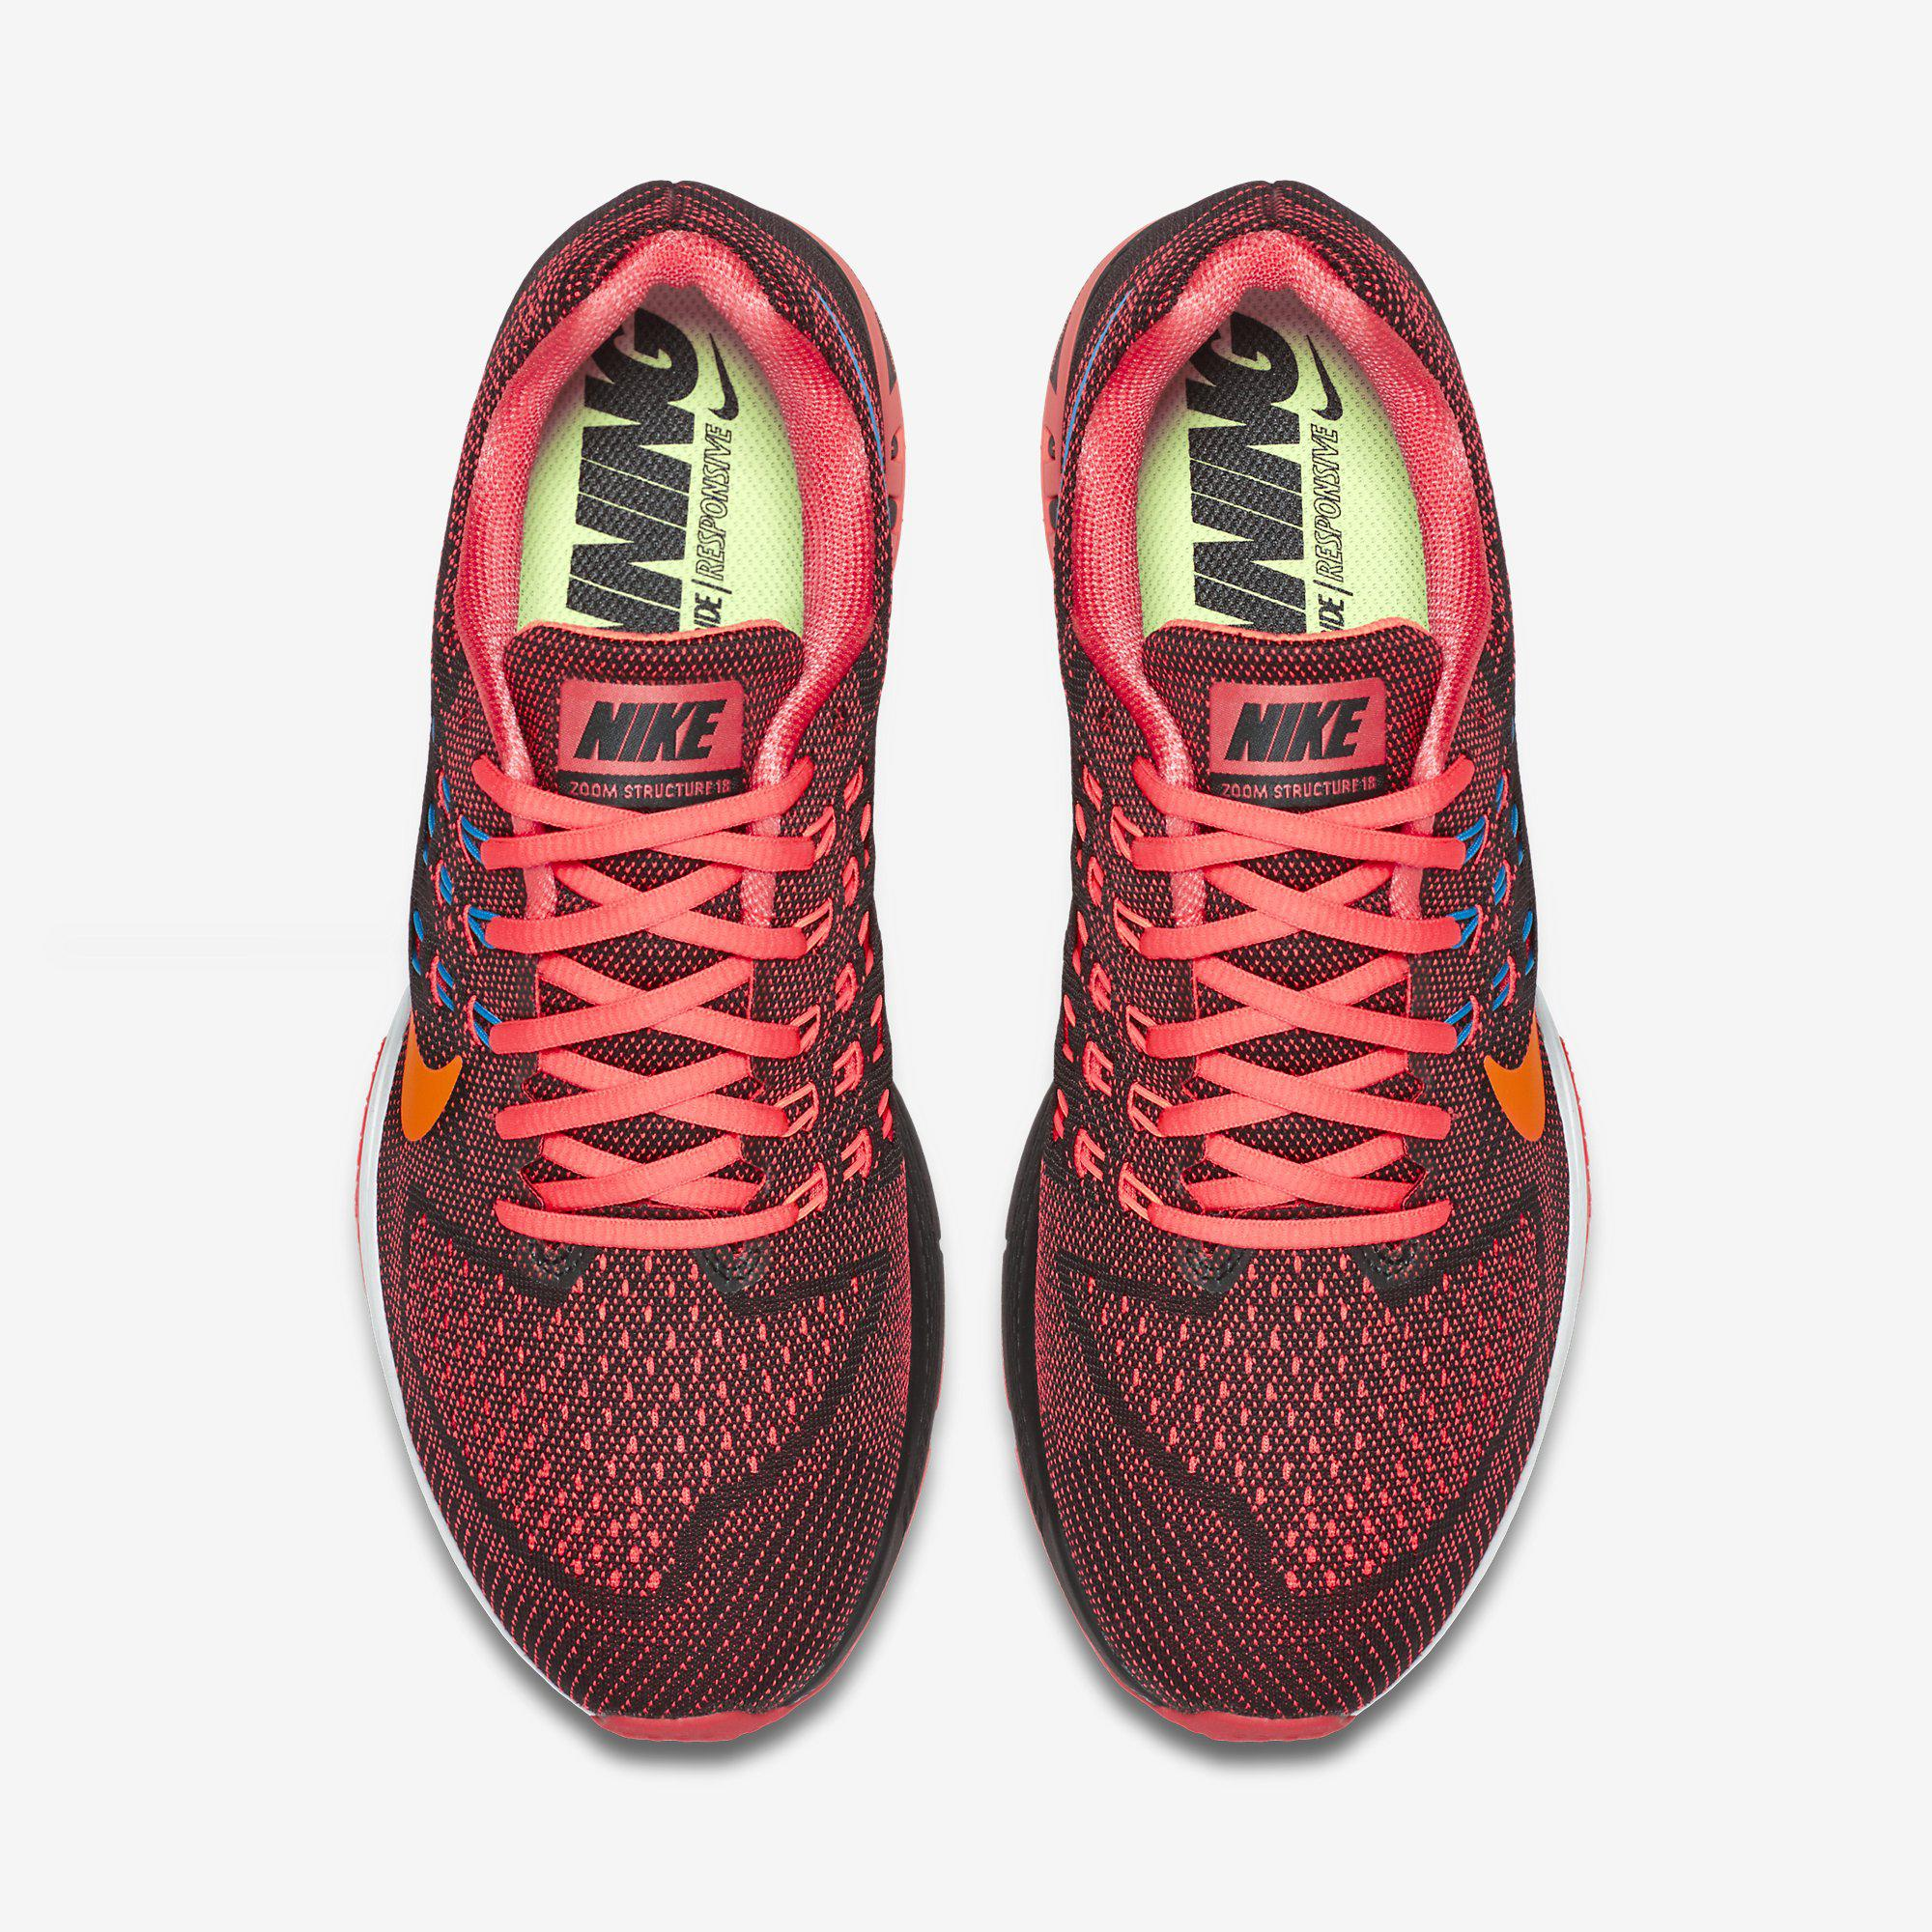 huge selection of 0eee8 f1a50 Nike Mens Air Zoom Structure 18 Running Shoes - Bright Crimson Black